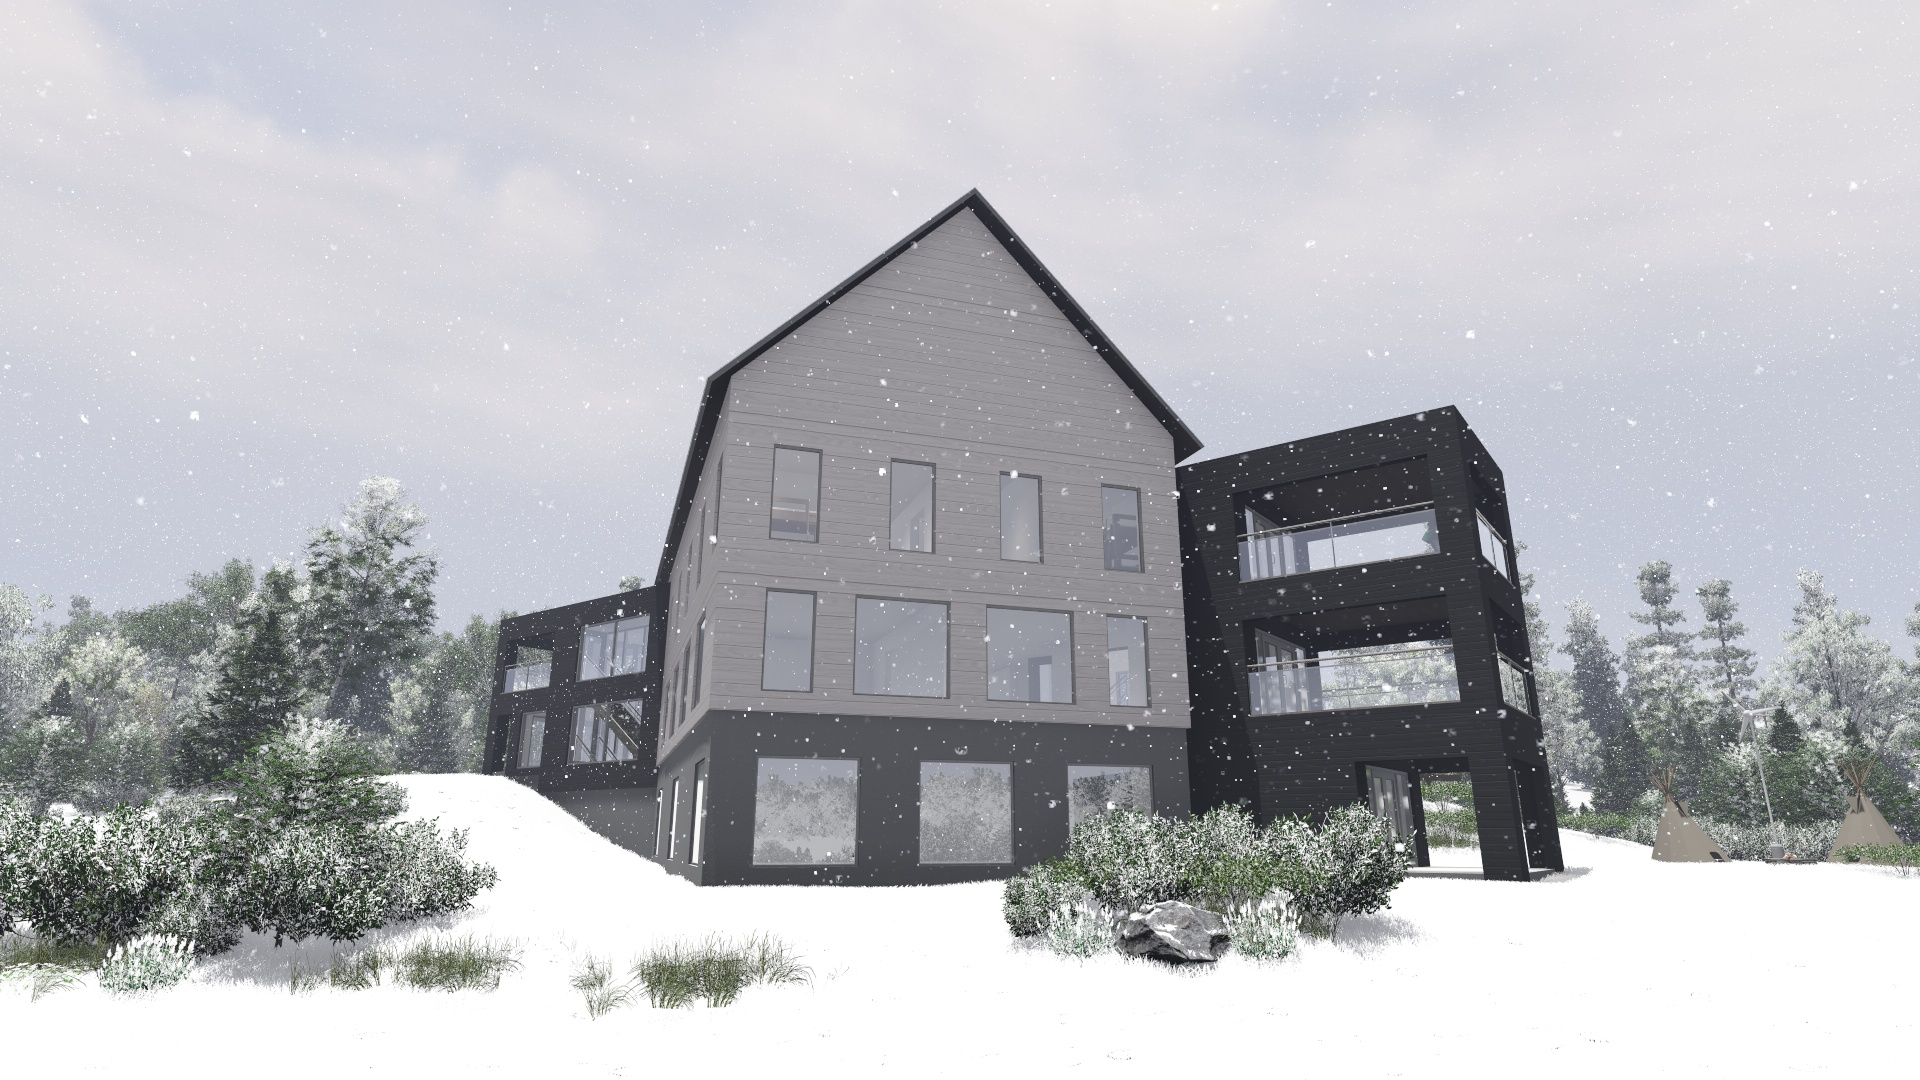 Kimbercote Accommodations Building - 002C - with snow 5.jpg